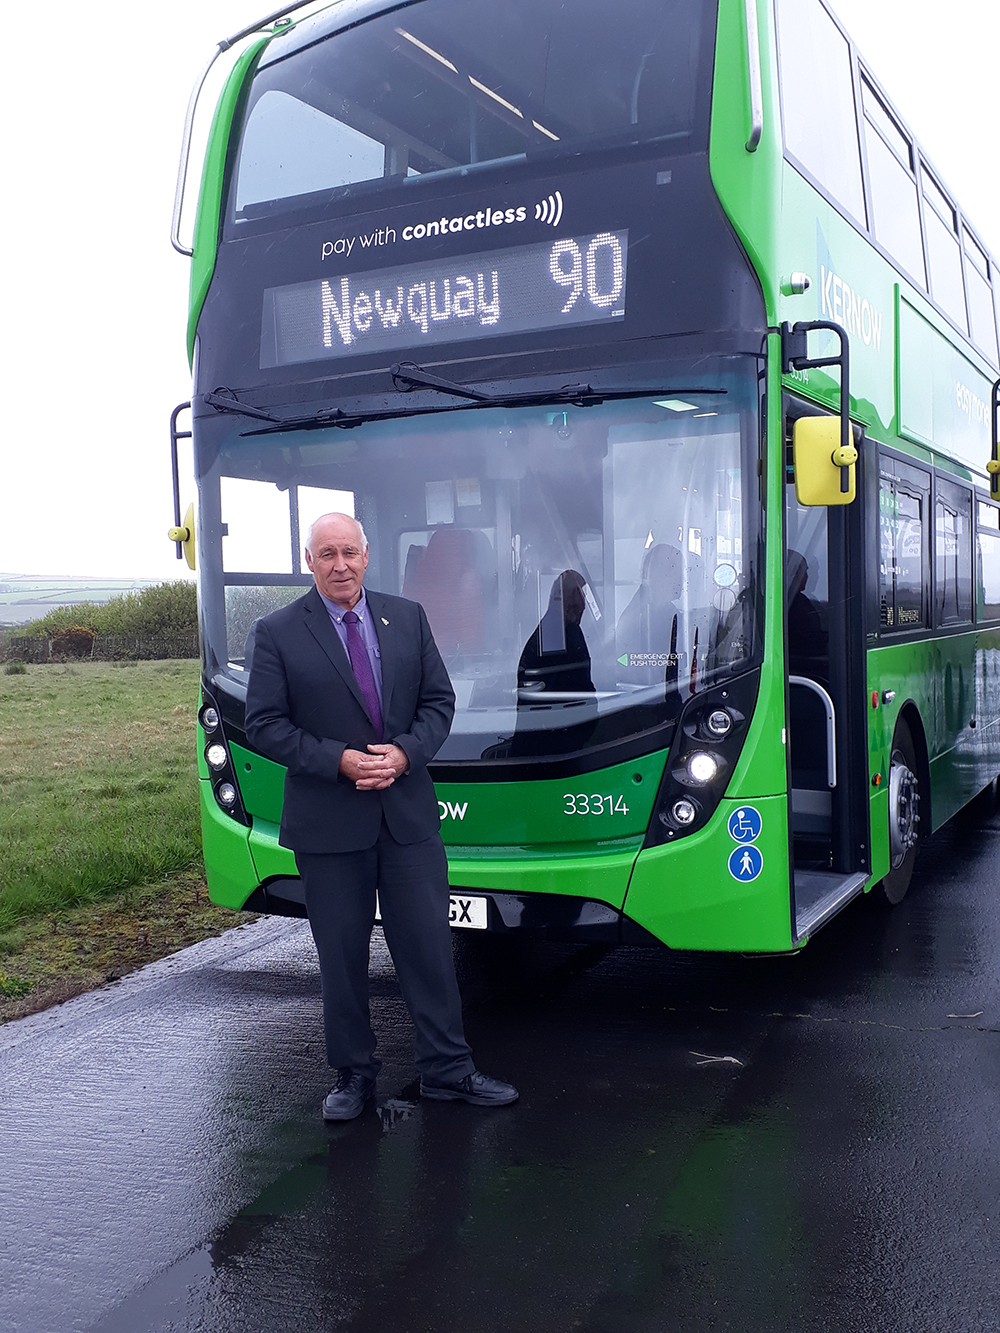 Geoff welcomes new buses to mid Cornwall